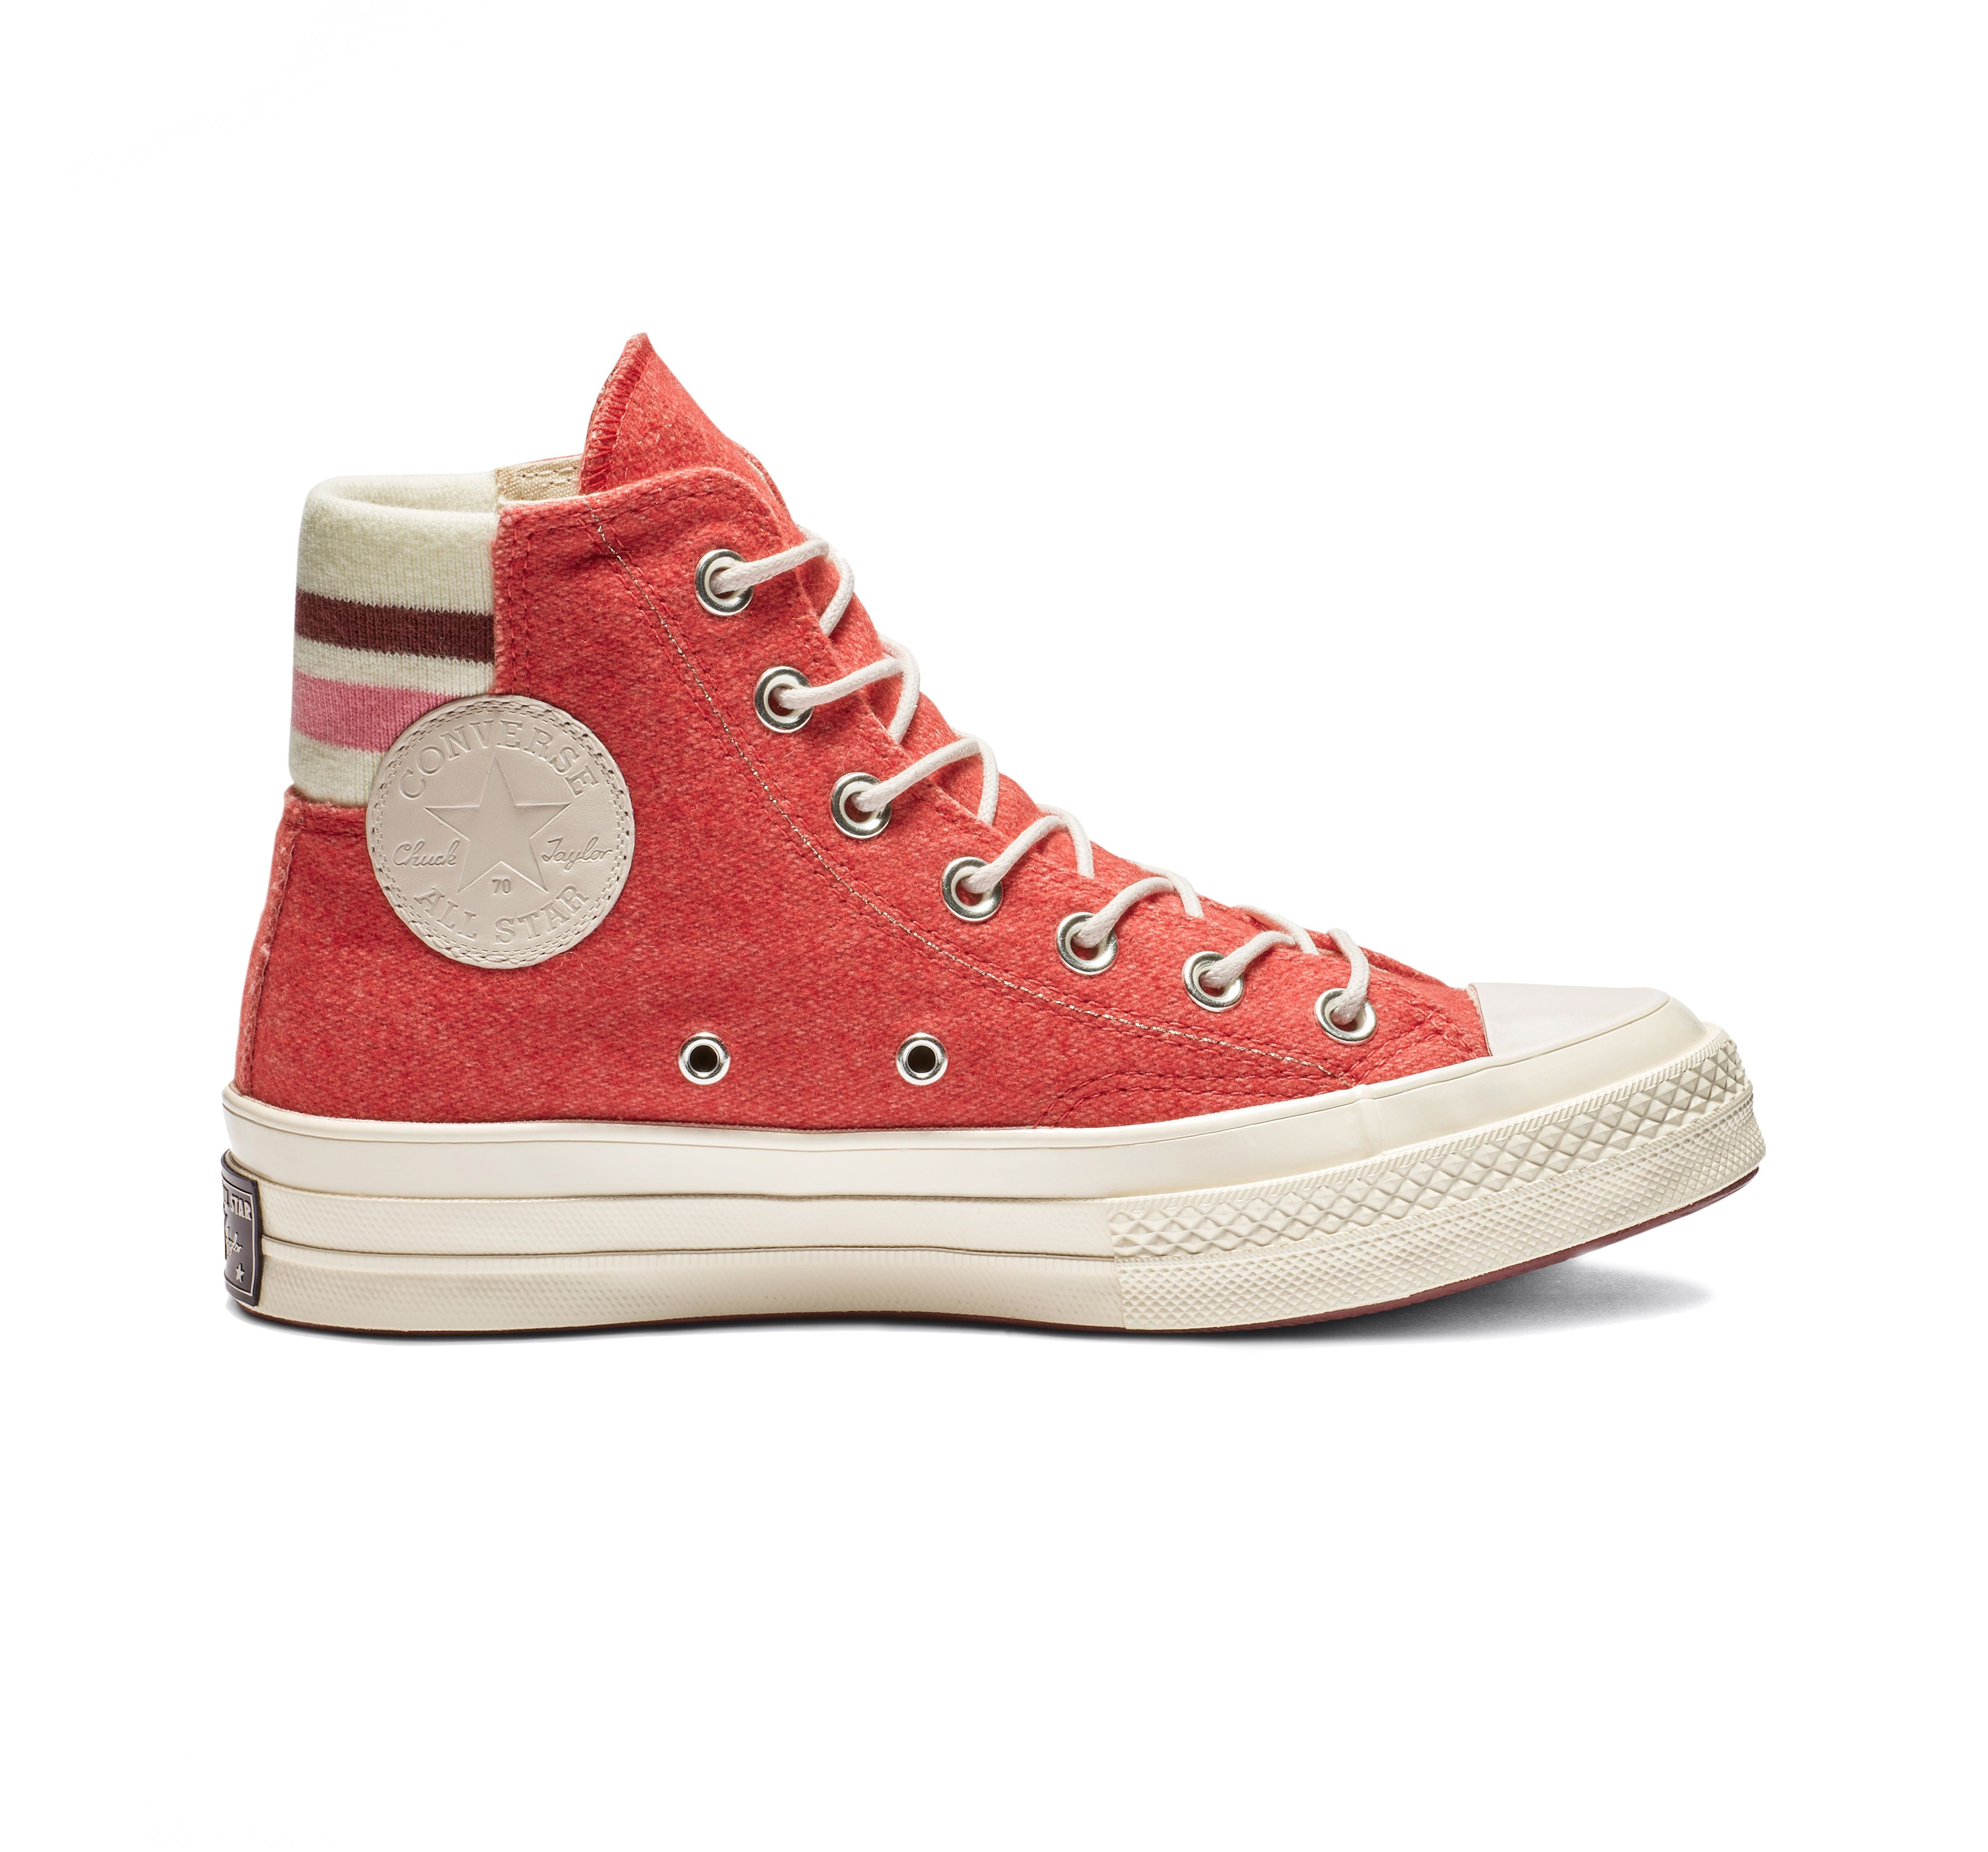 3d3477093e Chuck 70 Retro Stripe High Top in 2019 | Products | Red high tops ...